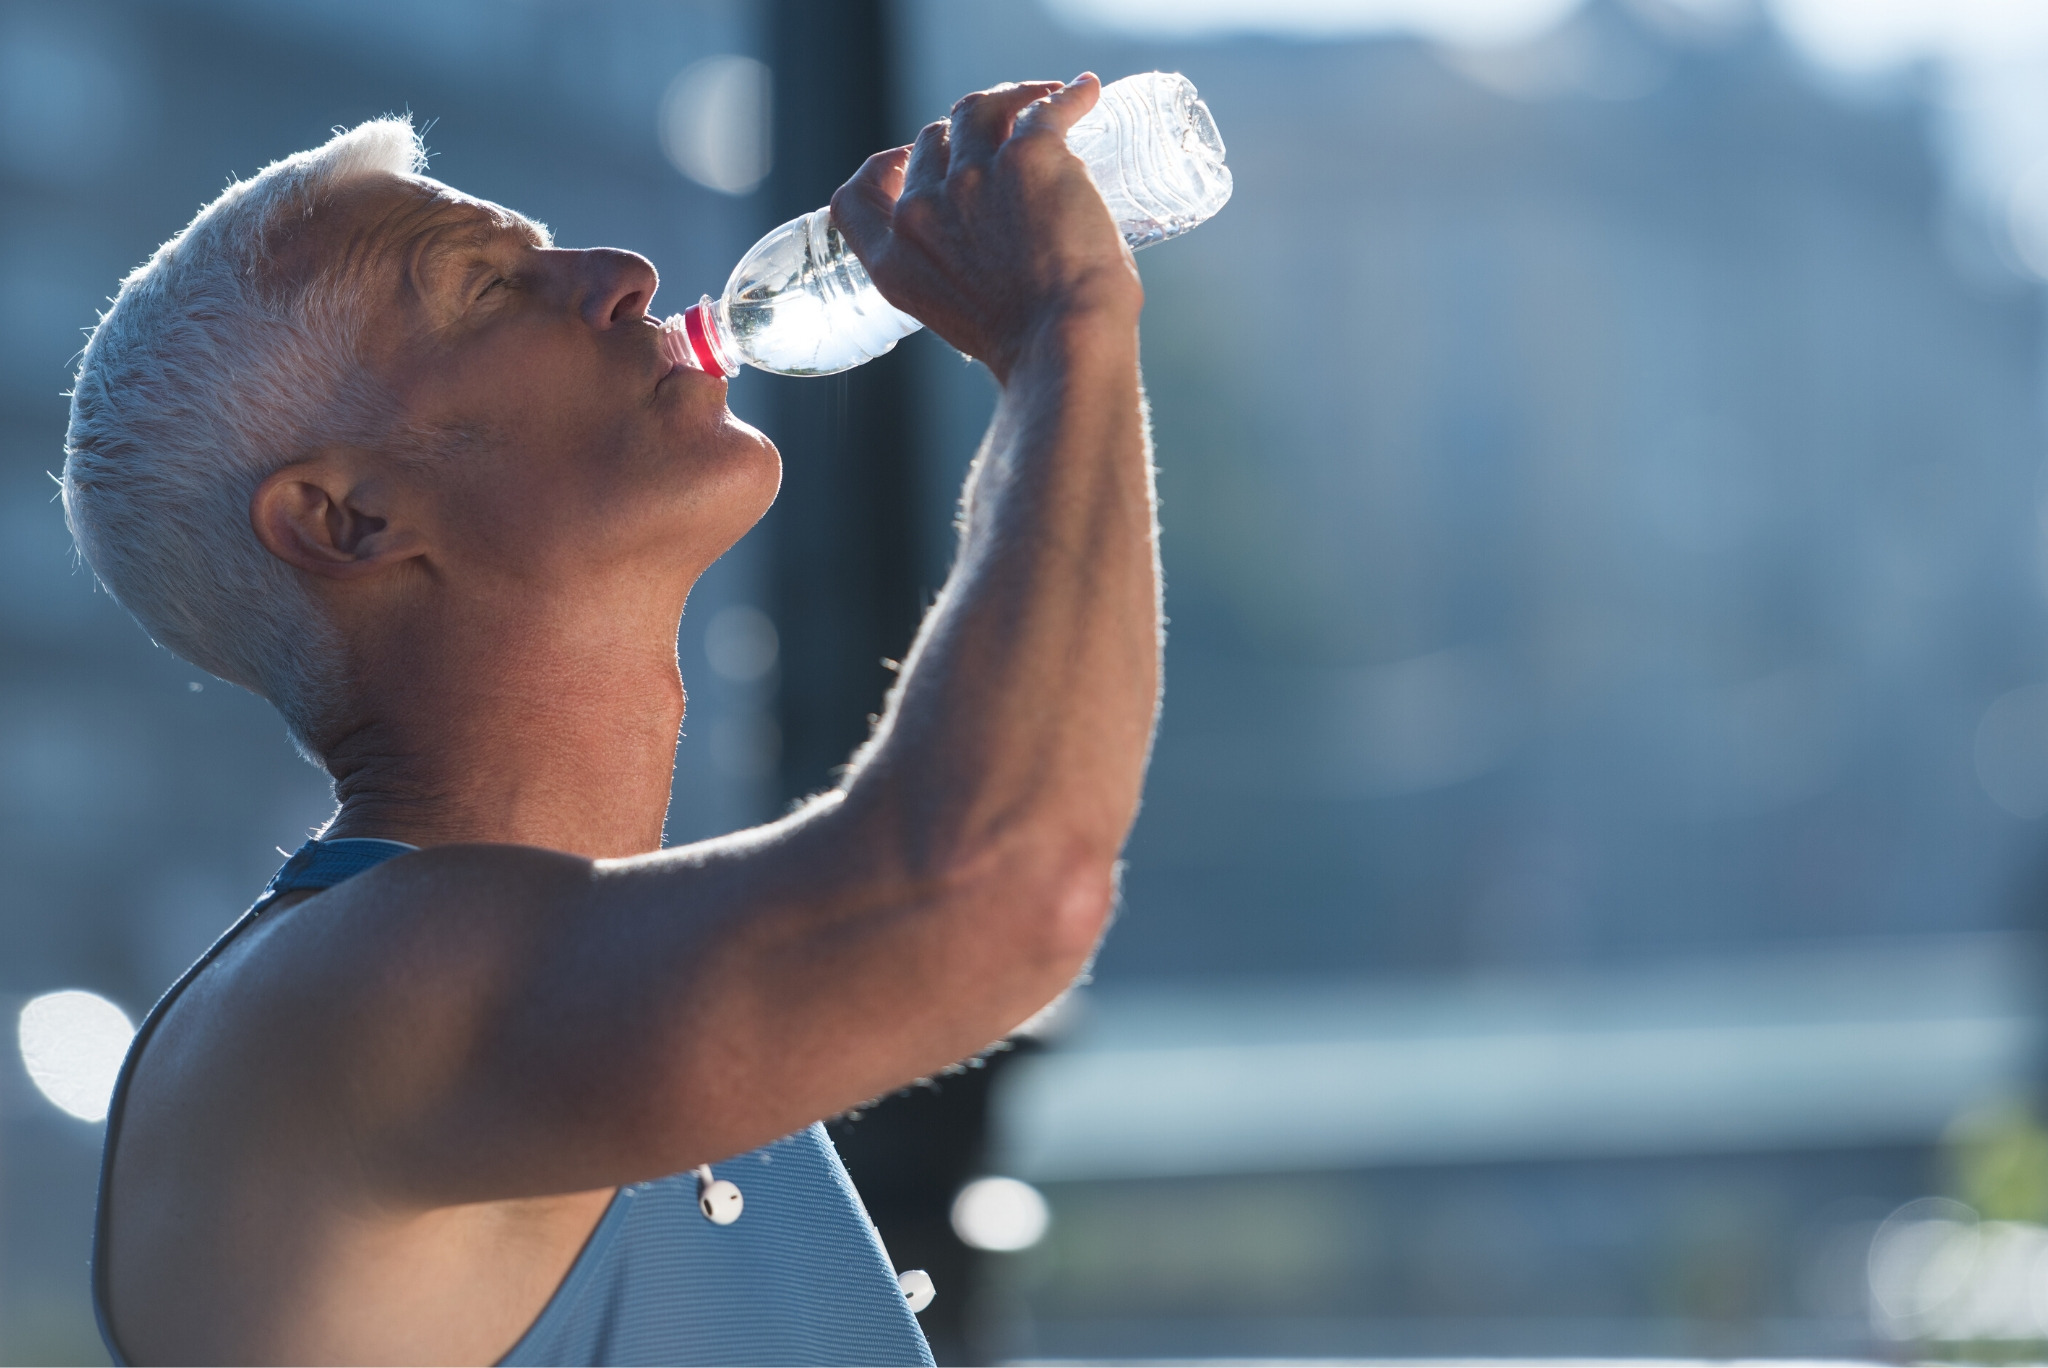 how to stay hydrated - side pic 2